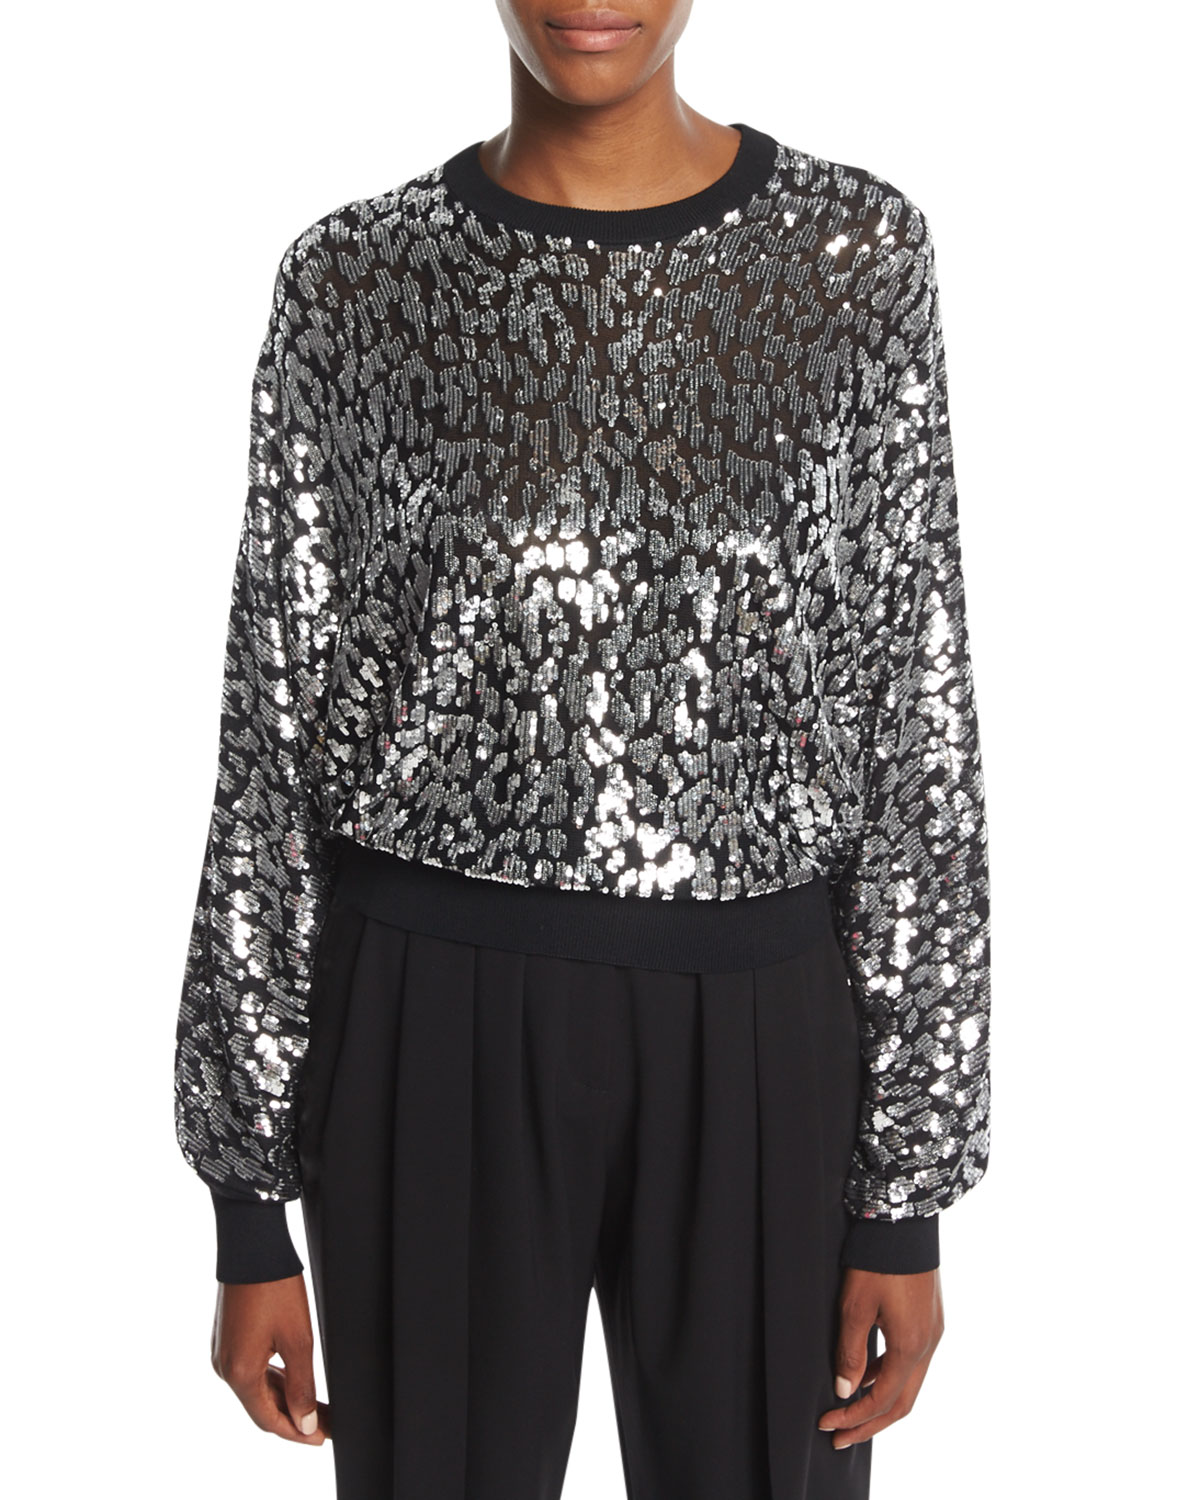 Sequined Leopard Sweatshirt